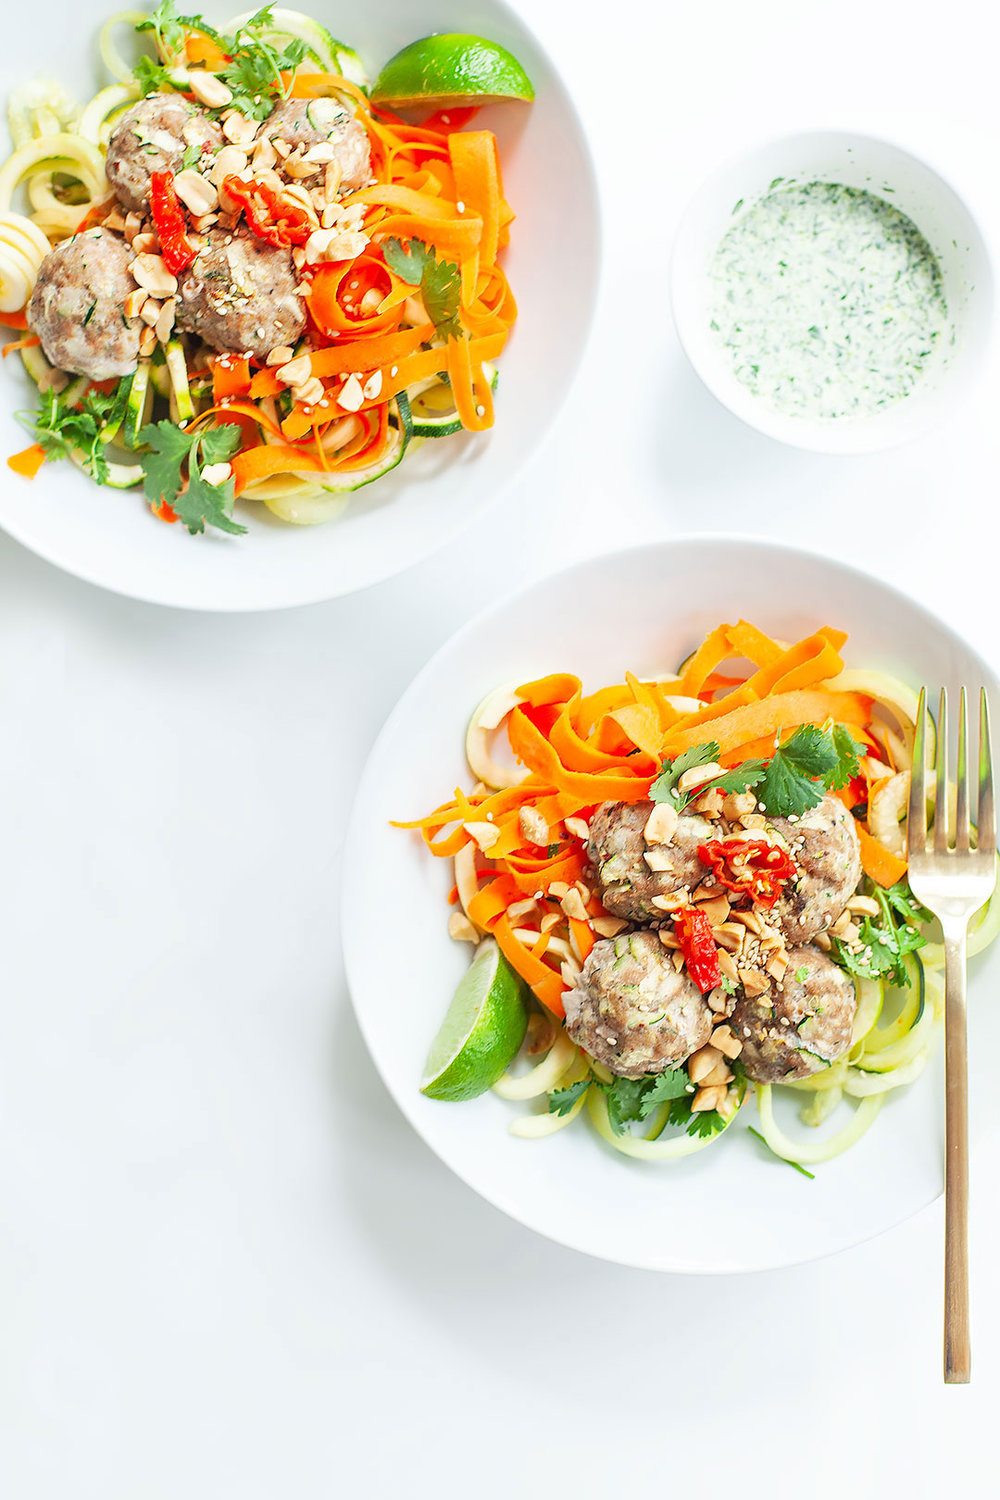 BÁNH MÌ BOWLS WITH ZUCCHINI NOODLES | Topped with baked turkey zucchini meatballs and cilantro pesto dressing. A healthy, easy, gluten-free, and paleo meal prep recipe. | LOVELEAF CO. NUTRITION #banhmi #salad #bowl #zucchininoodles #zoodles #glutenfree #paleo #grainfree #dinner #lunch #mealprep